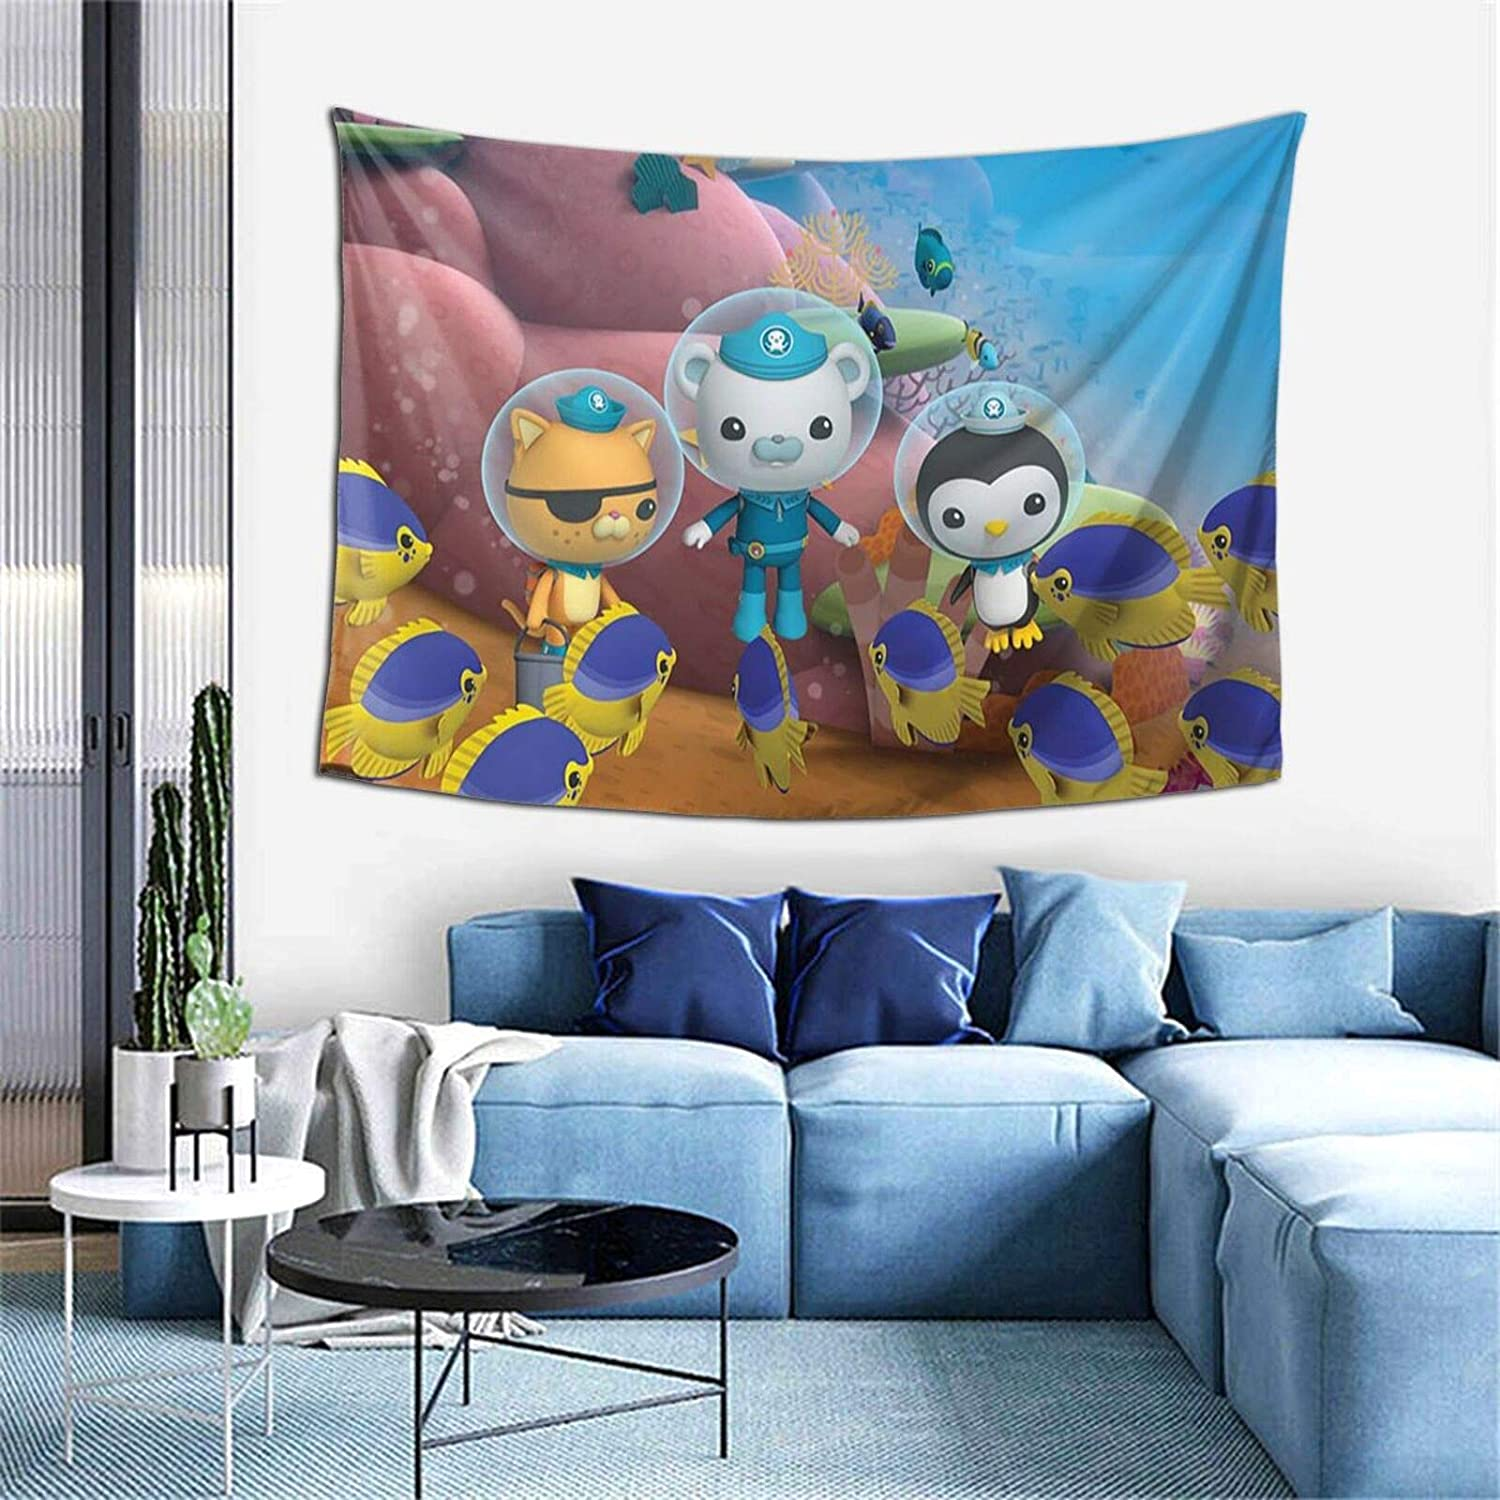 CherishU The Oc-to-Nauts Tapestry Funny Aesthetic Hippie Wall Hanging Bedding for Living Room Bedroom Deor Home Art Decor 60 X 40in